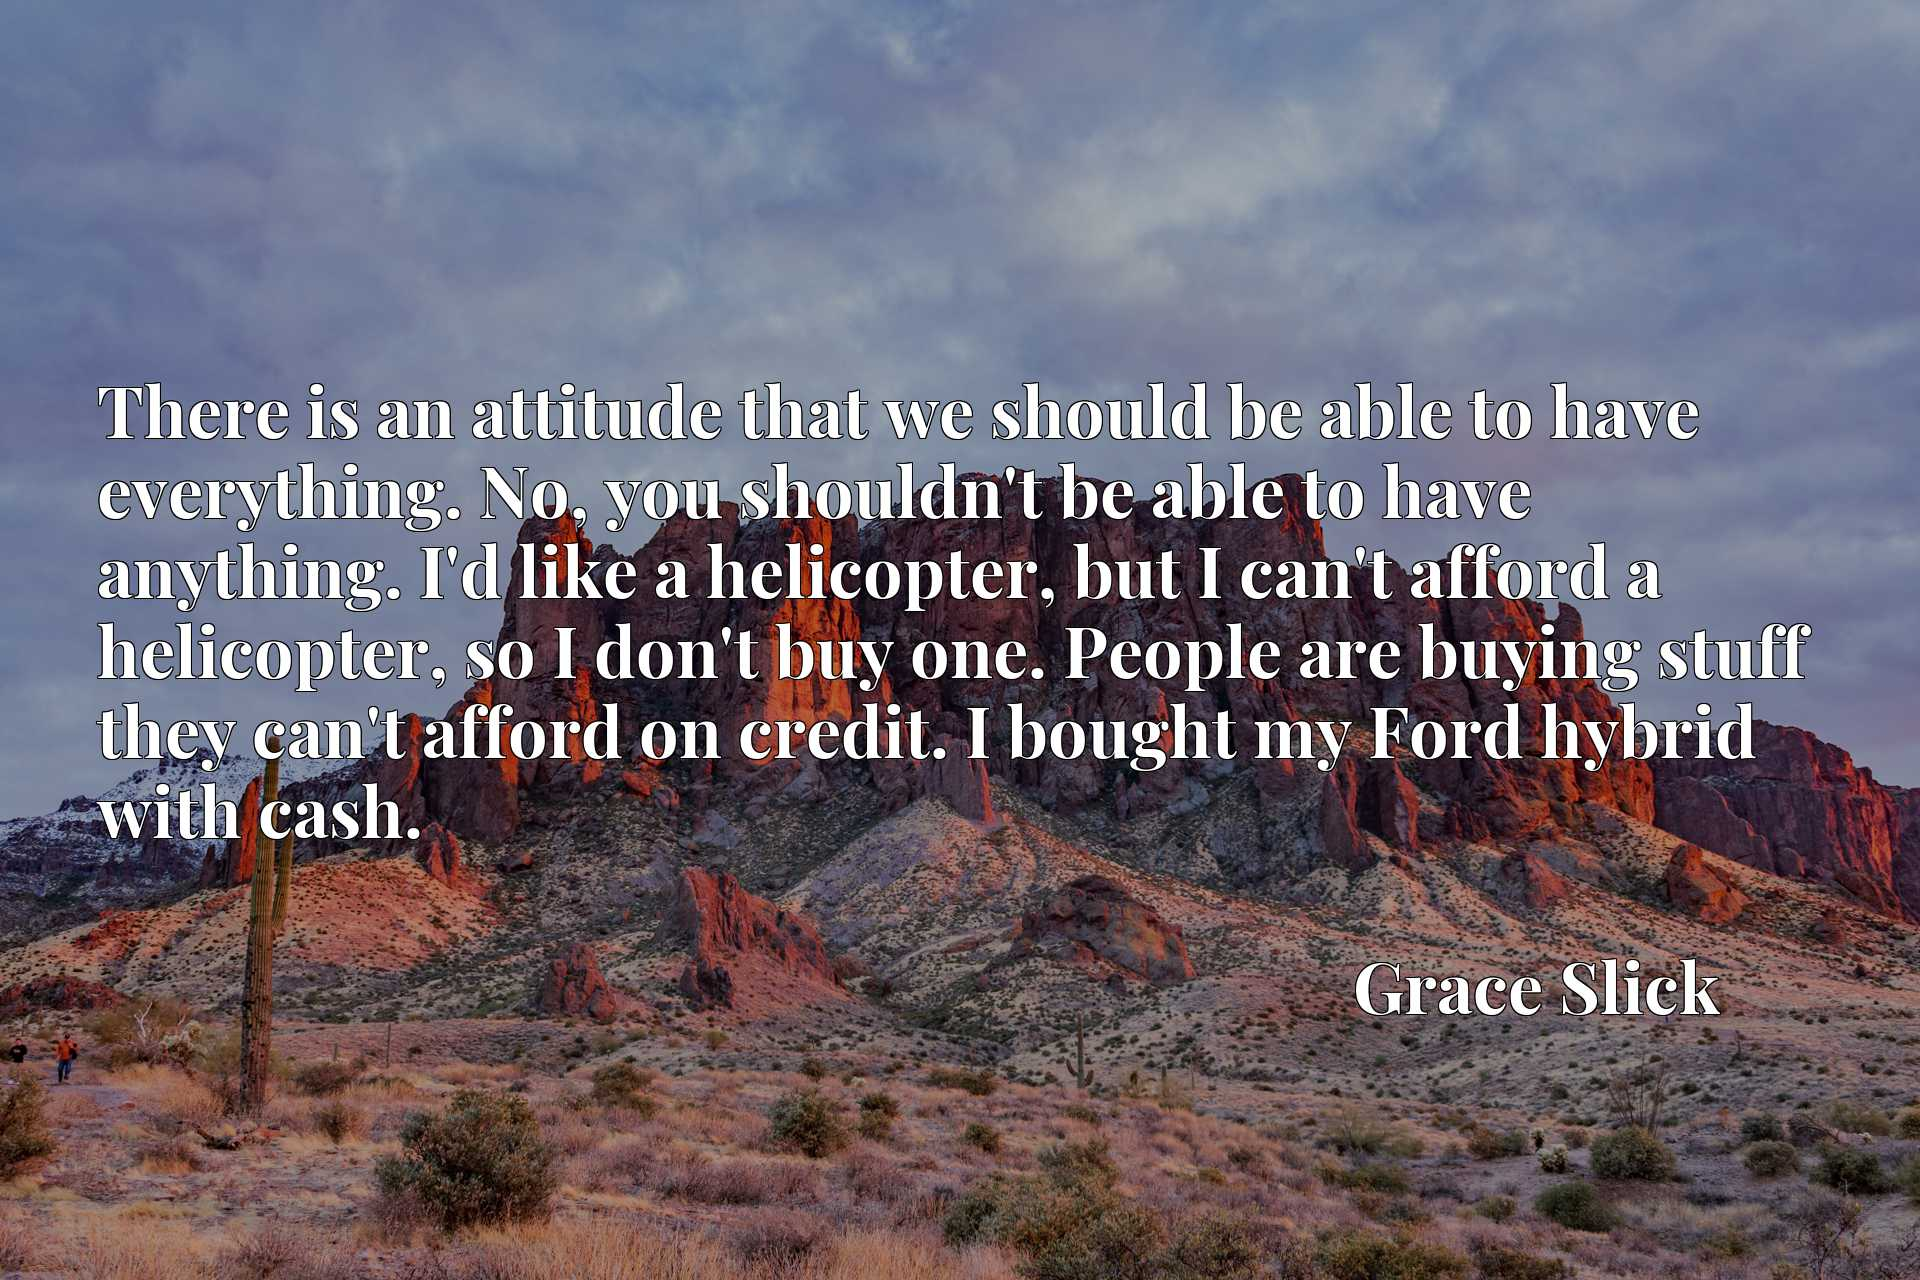 There is an attitude that we should be able to have everything. No, you shouldn't be able to have anything. I'd like a helicopter, but I can't afford a helicopter, so I don't buy one. People are buying stuff they can't afford on credit. I bought my Ford hybrid with cash.